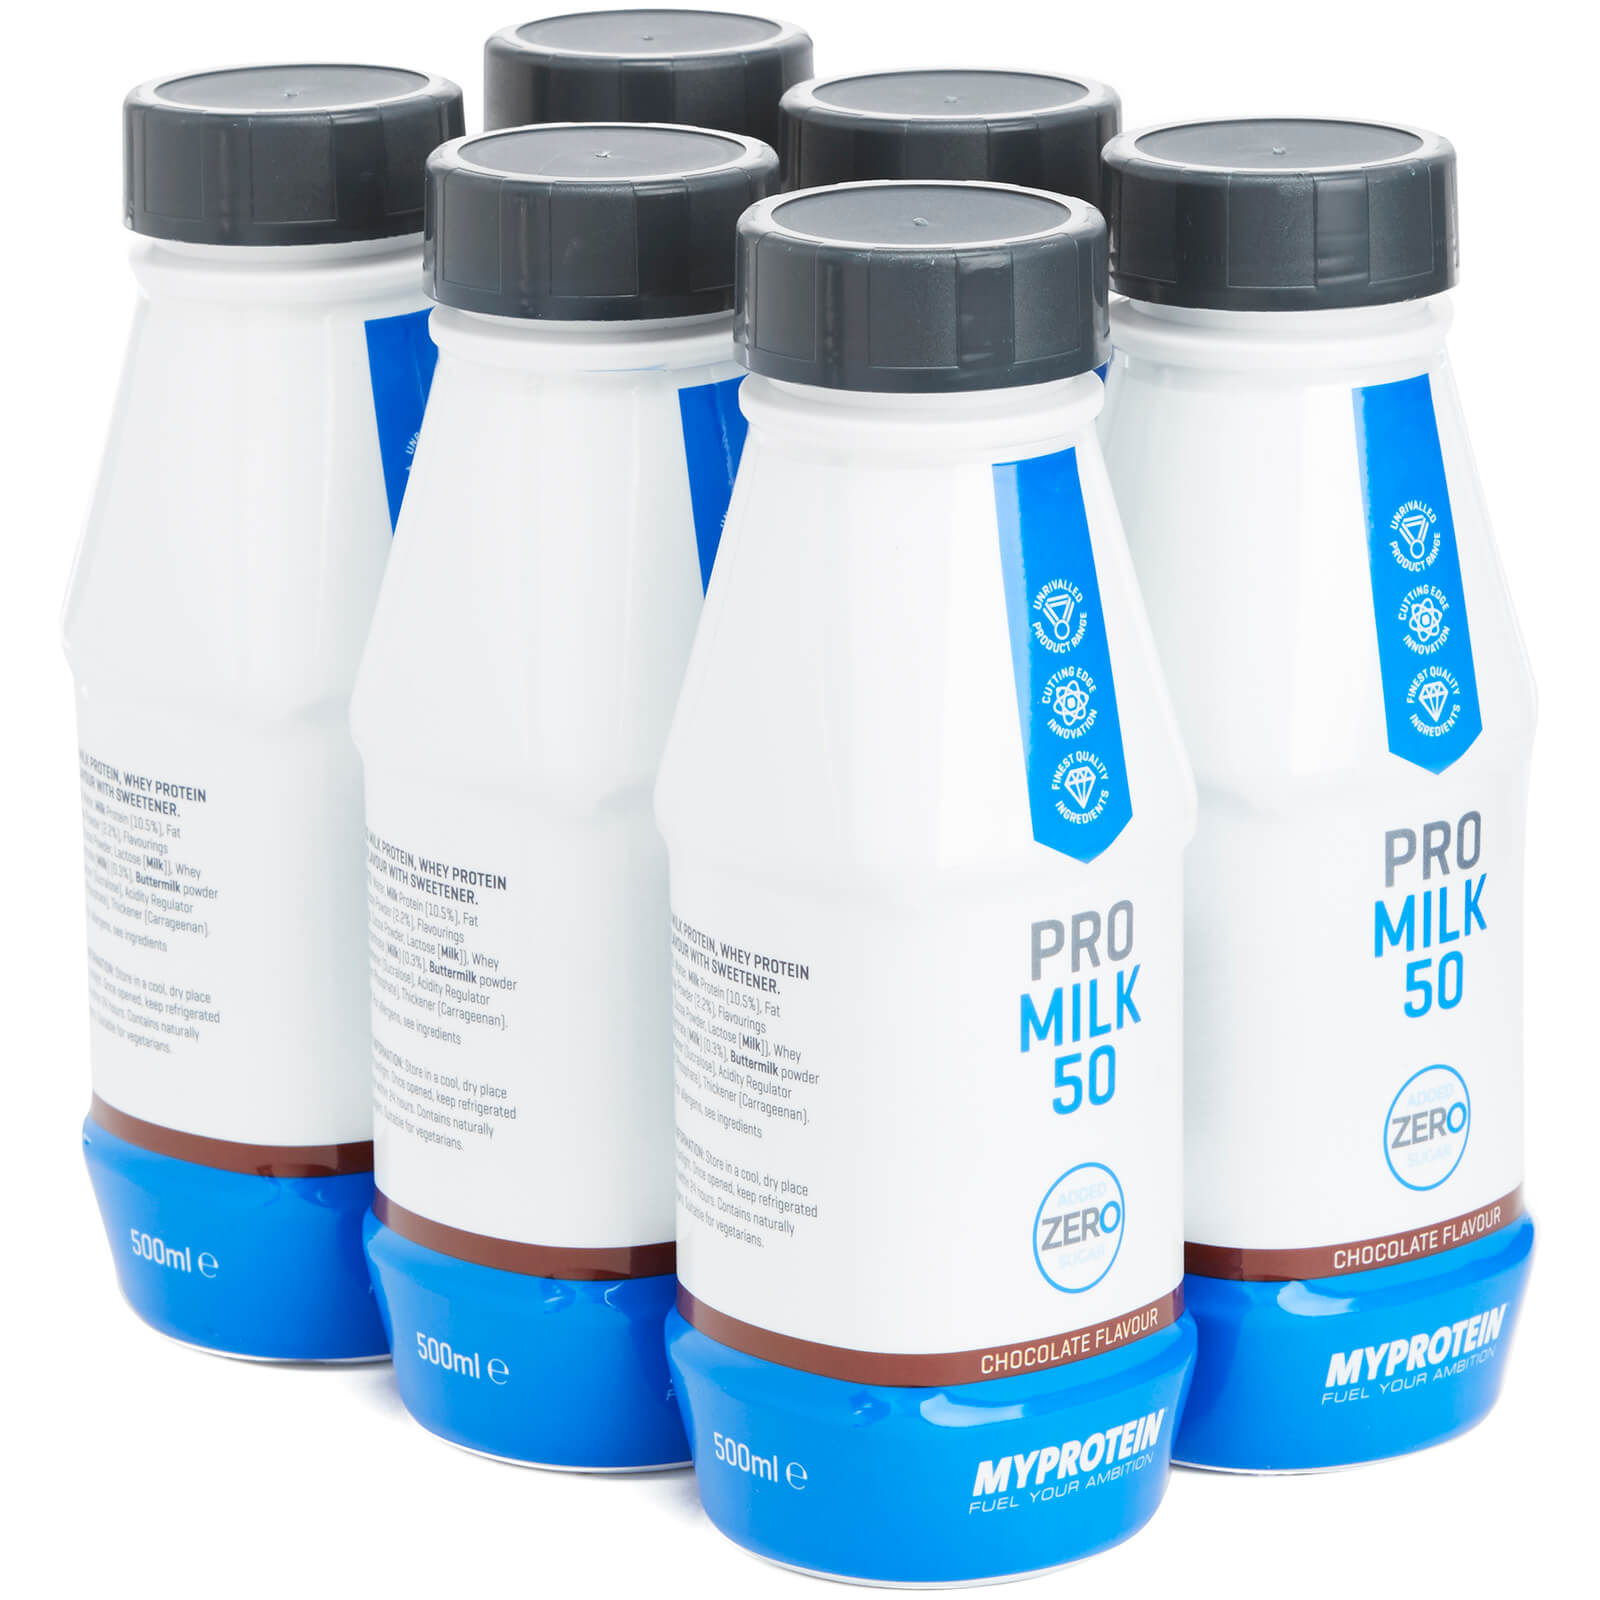 Pro Milk 50 Zero, Chocolate, 6 x 500ml